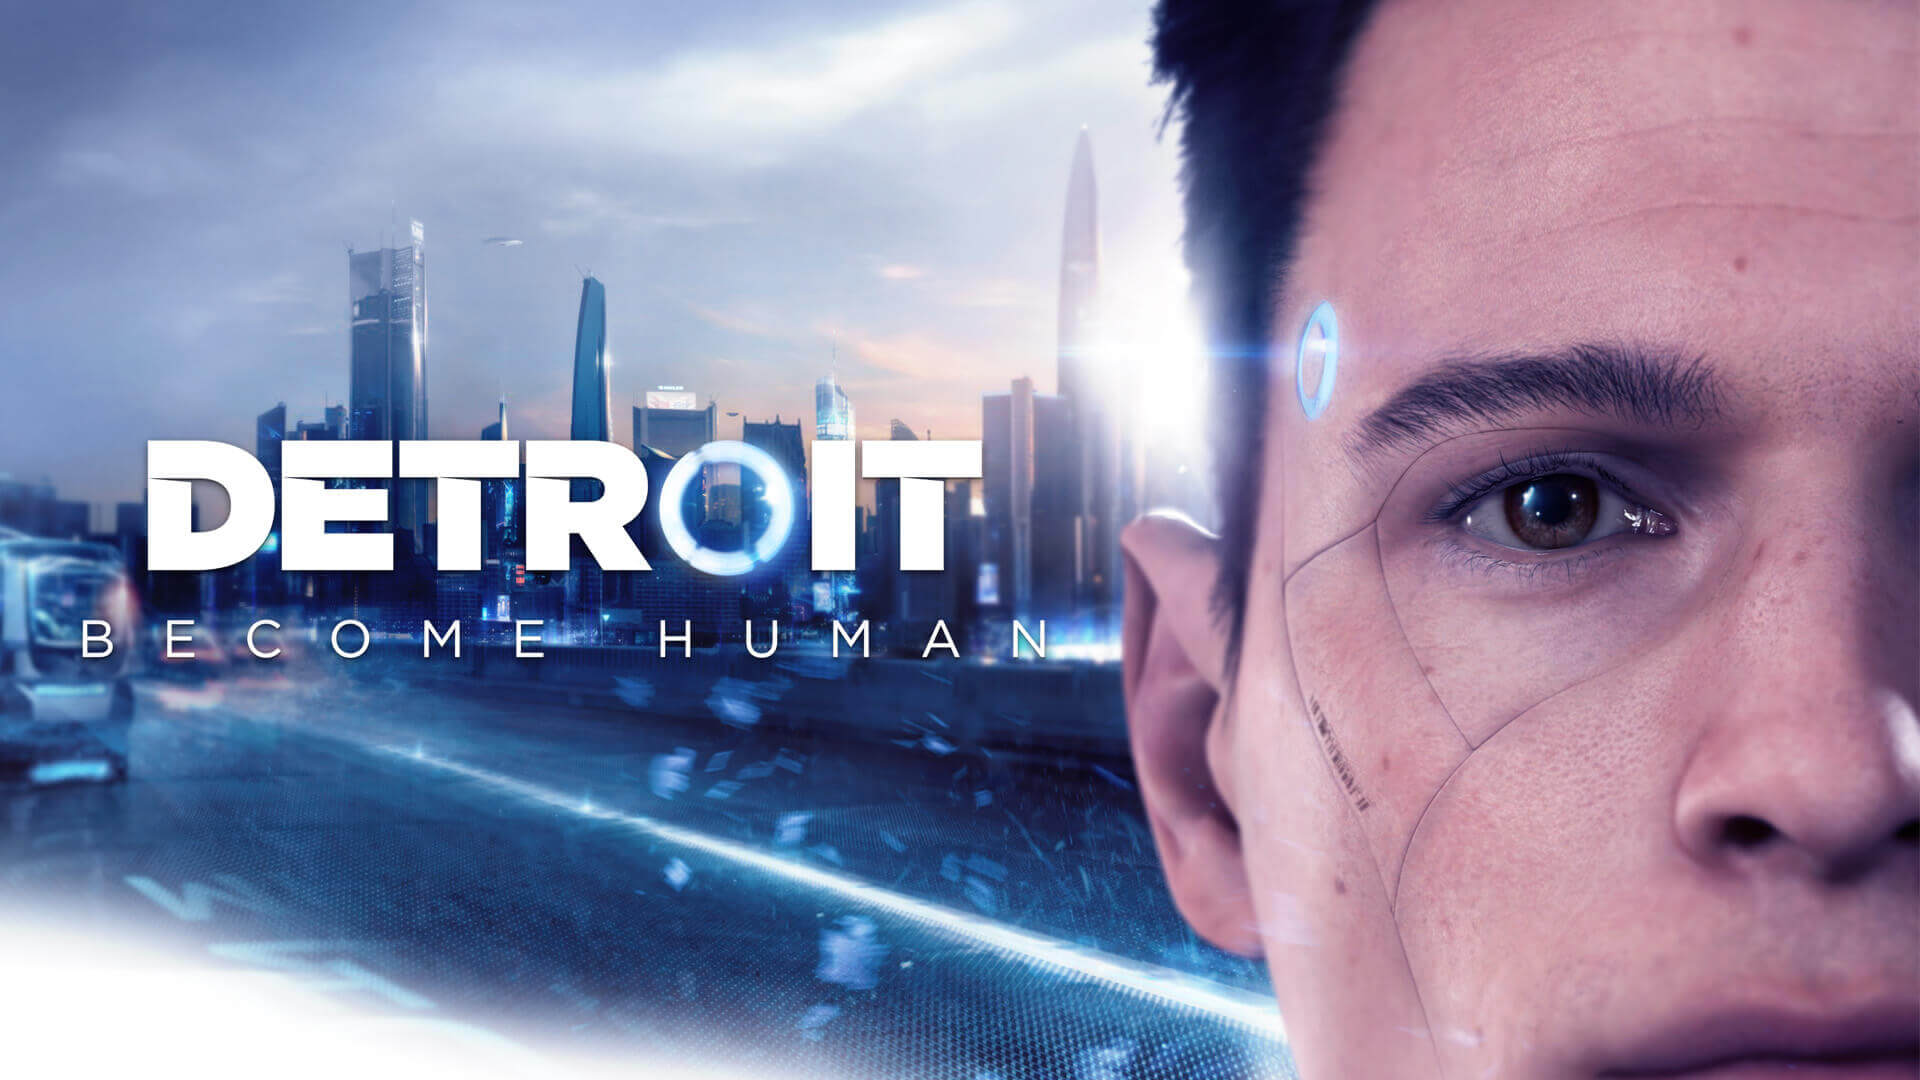 Detroit: Become Human PC demo to return later this week on the Epic Games Store